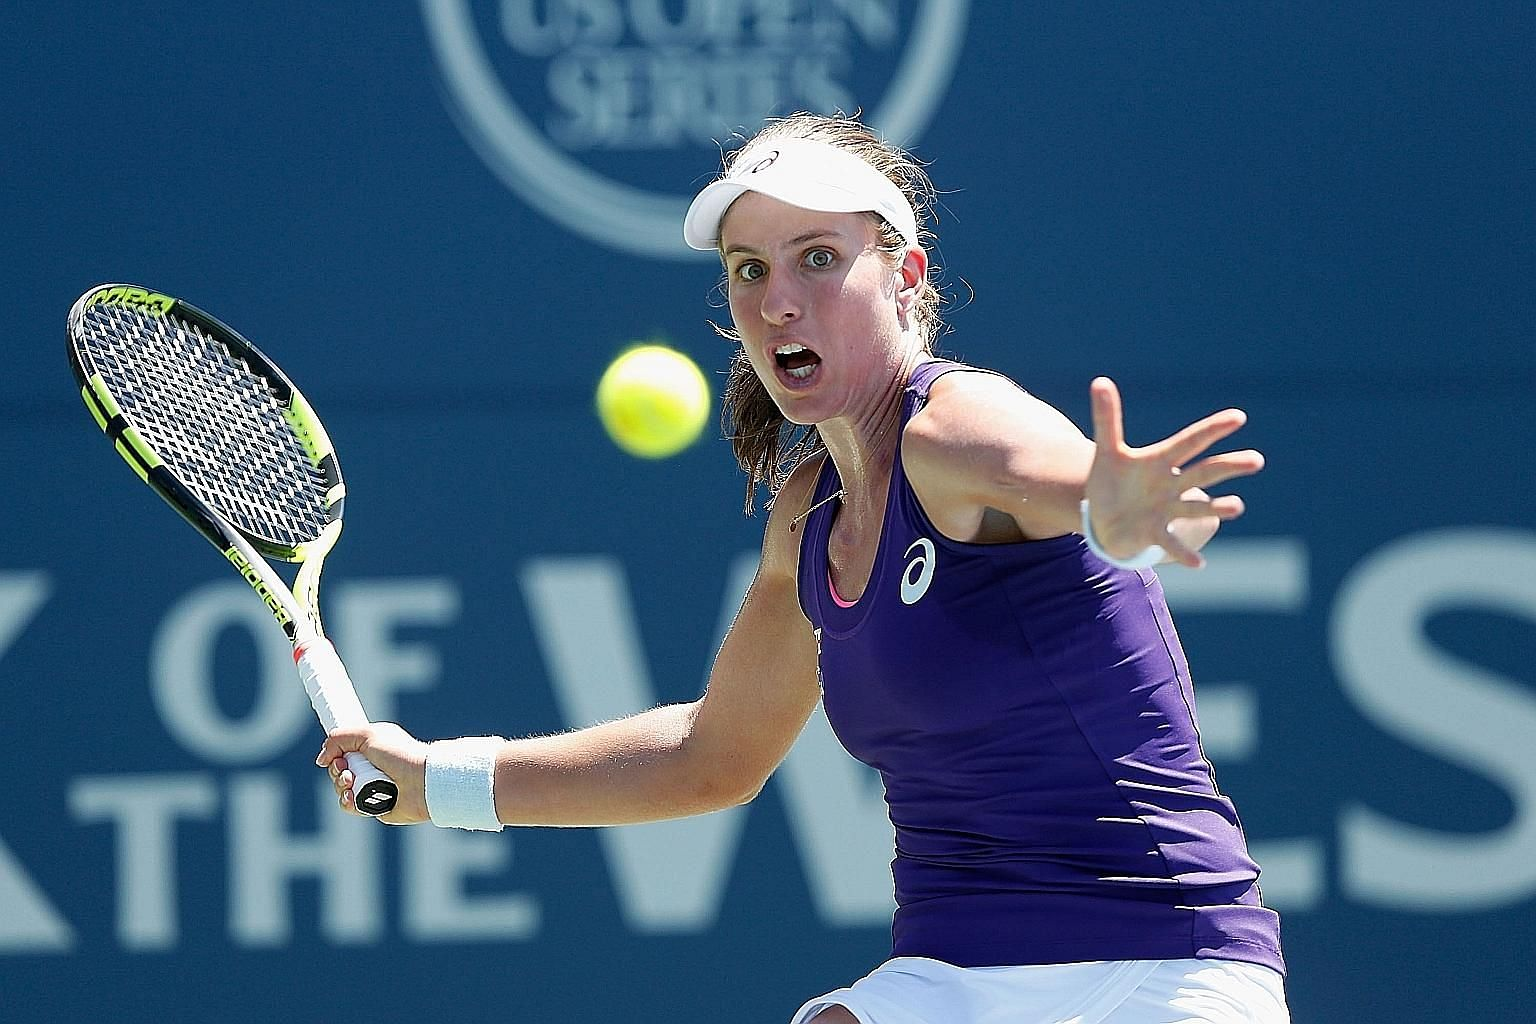 Britain's Johanna Konta, the world No. 18, hitting a forehand during her 7-5, 5-7, 6-2 victory against Venus Williams in the final of the WTA hardcourt tournament in Stanford, California on Sunday.